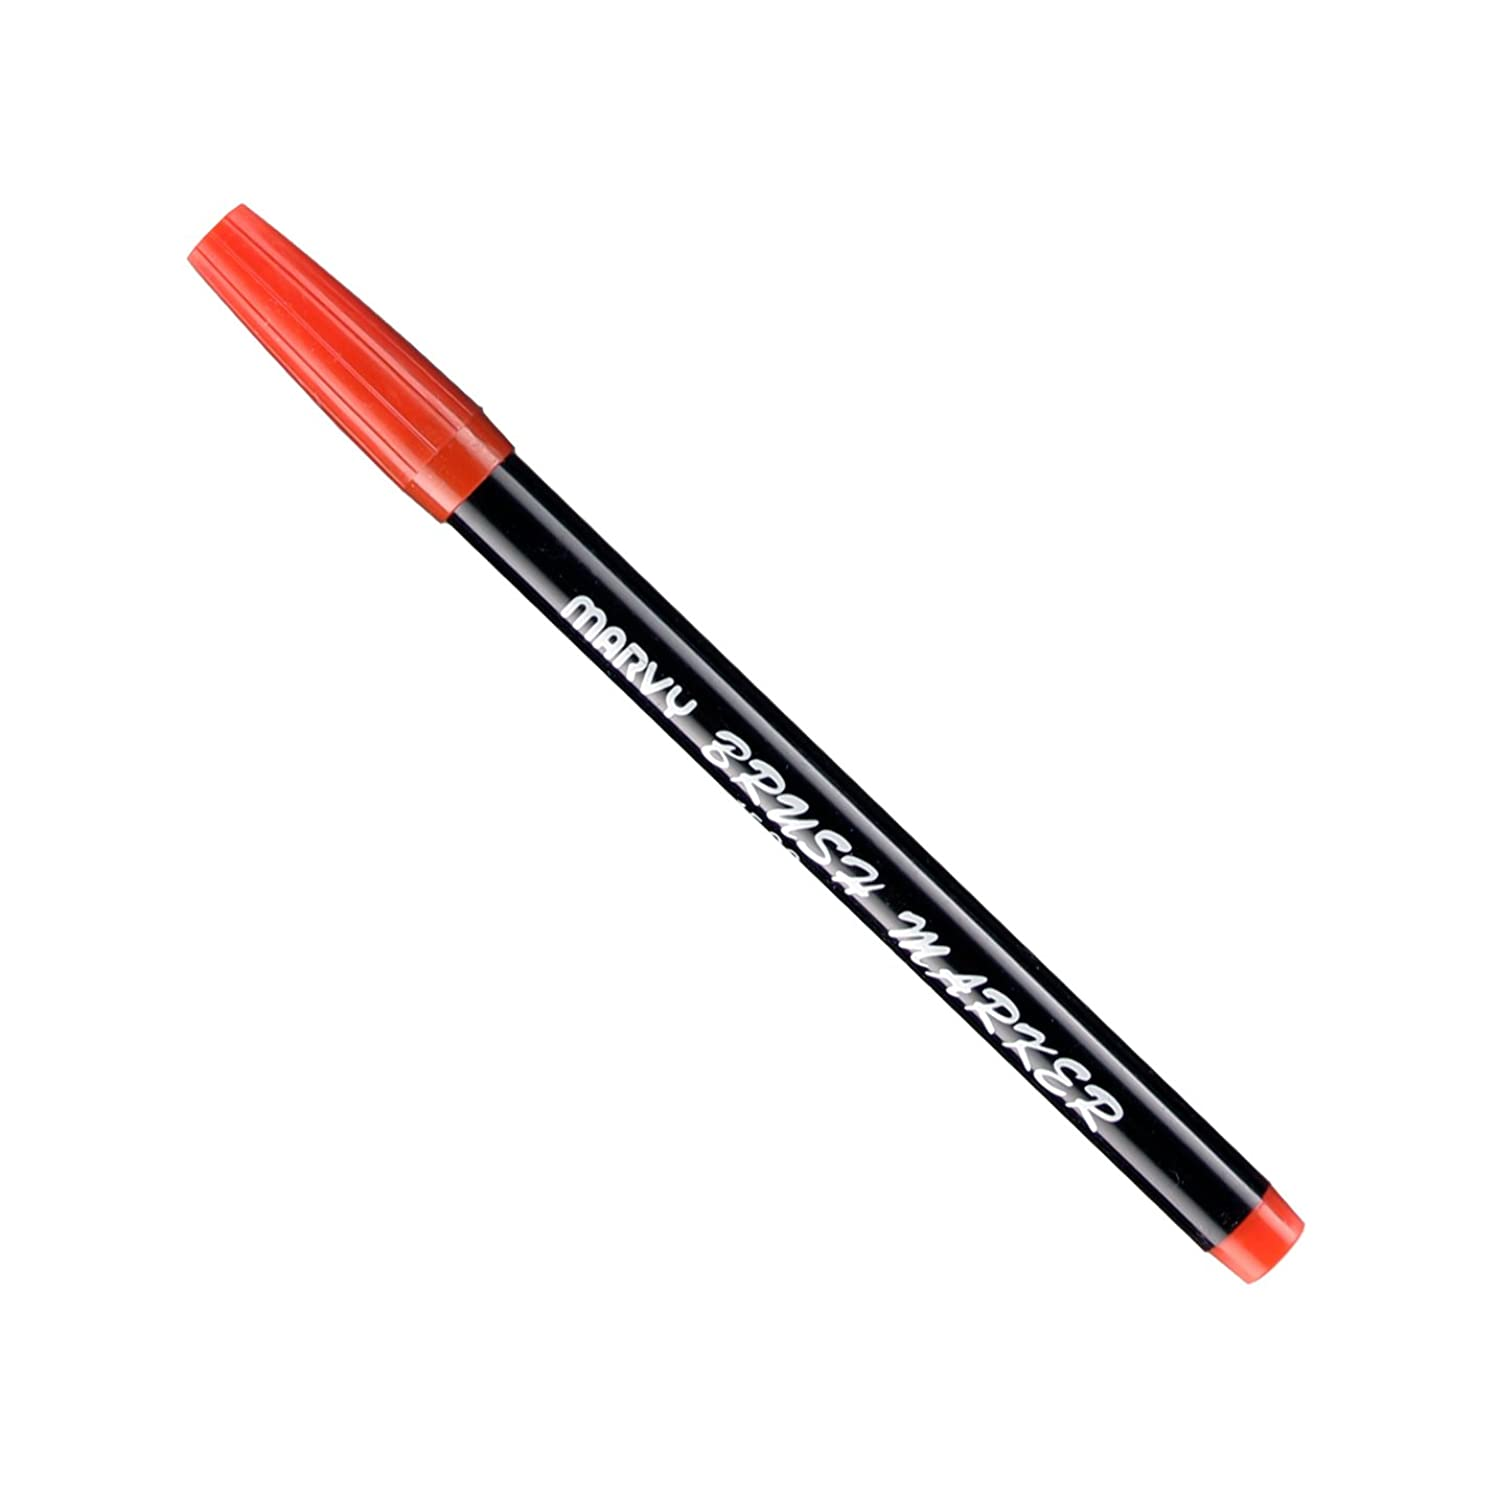 Uchida Of America 1500-C-2 Brush Marker, Red